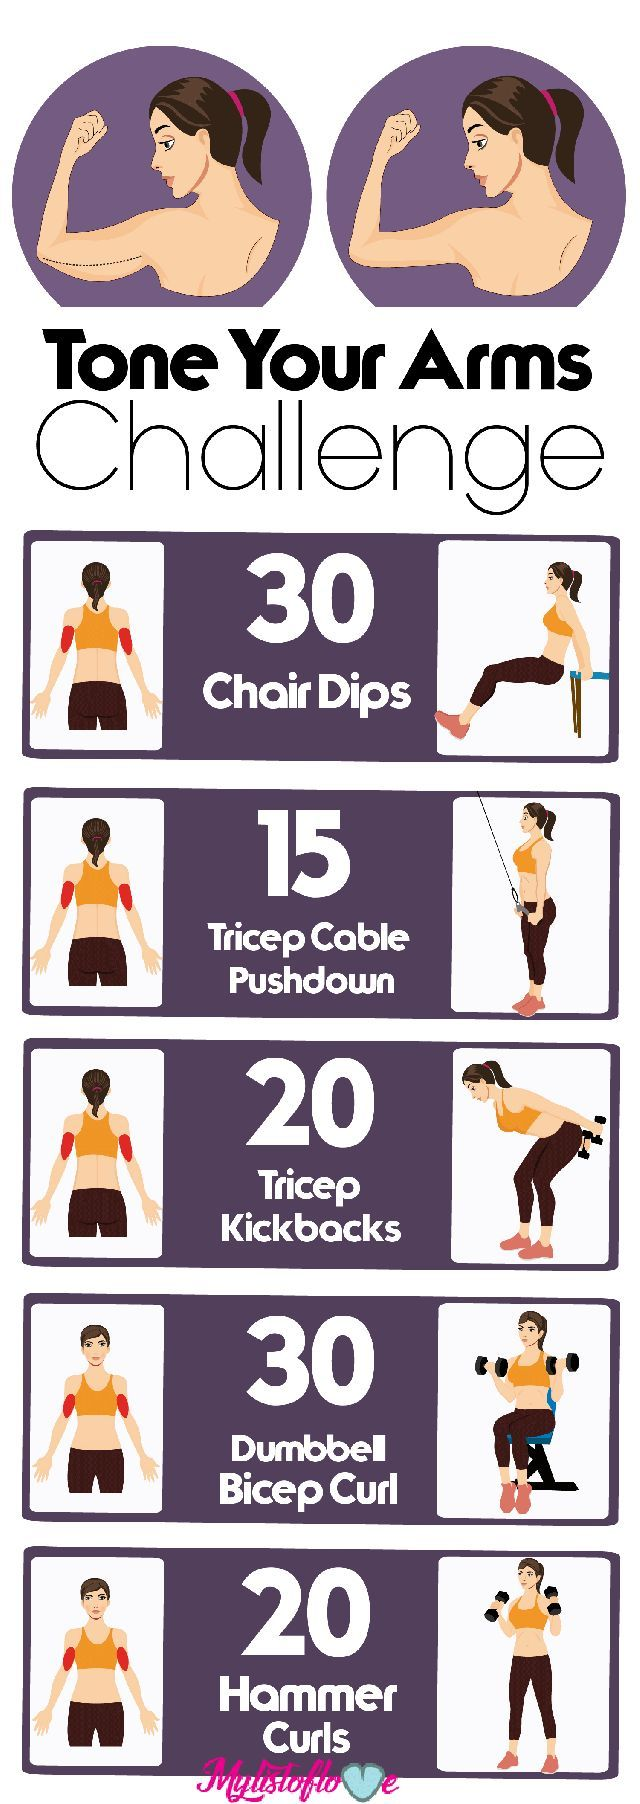 5 Best Exercises To Tone Your Arms | Exercise And Fitness Tips | #exercise #fitn…